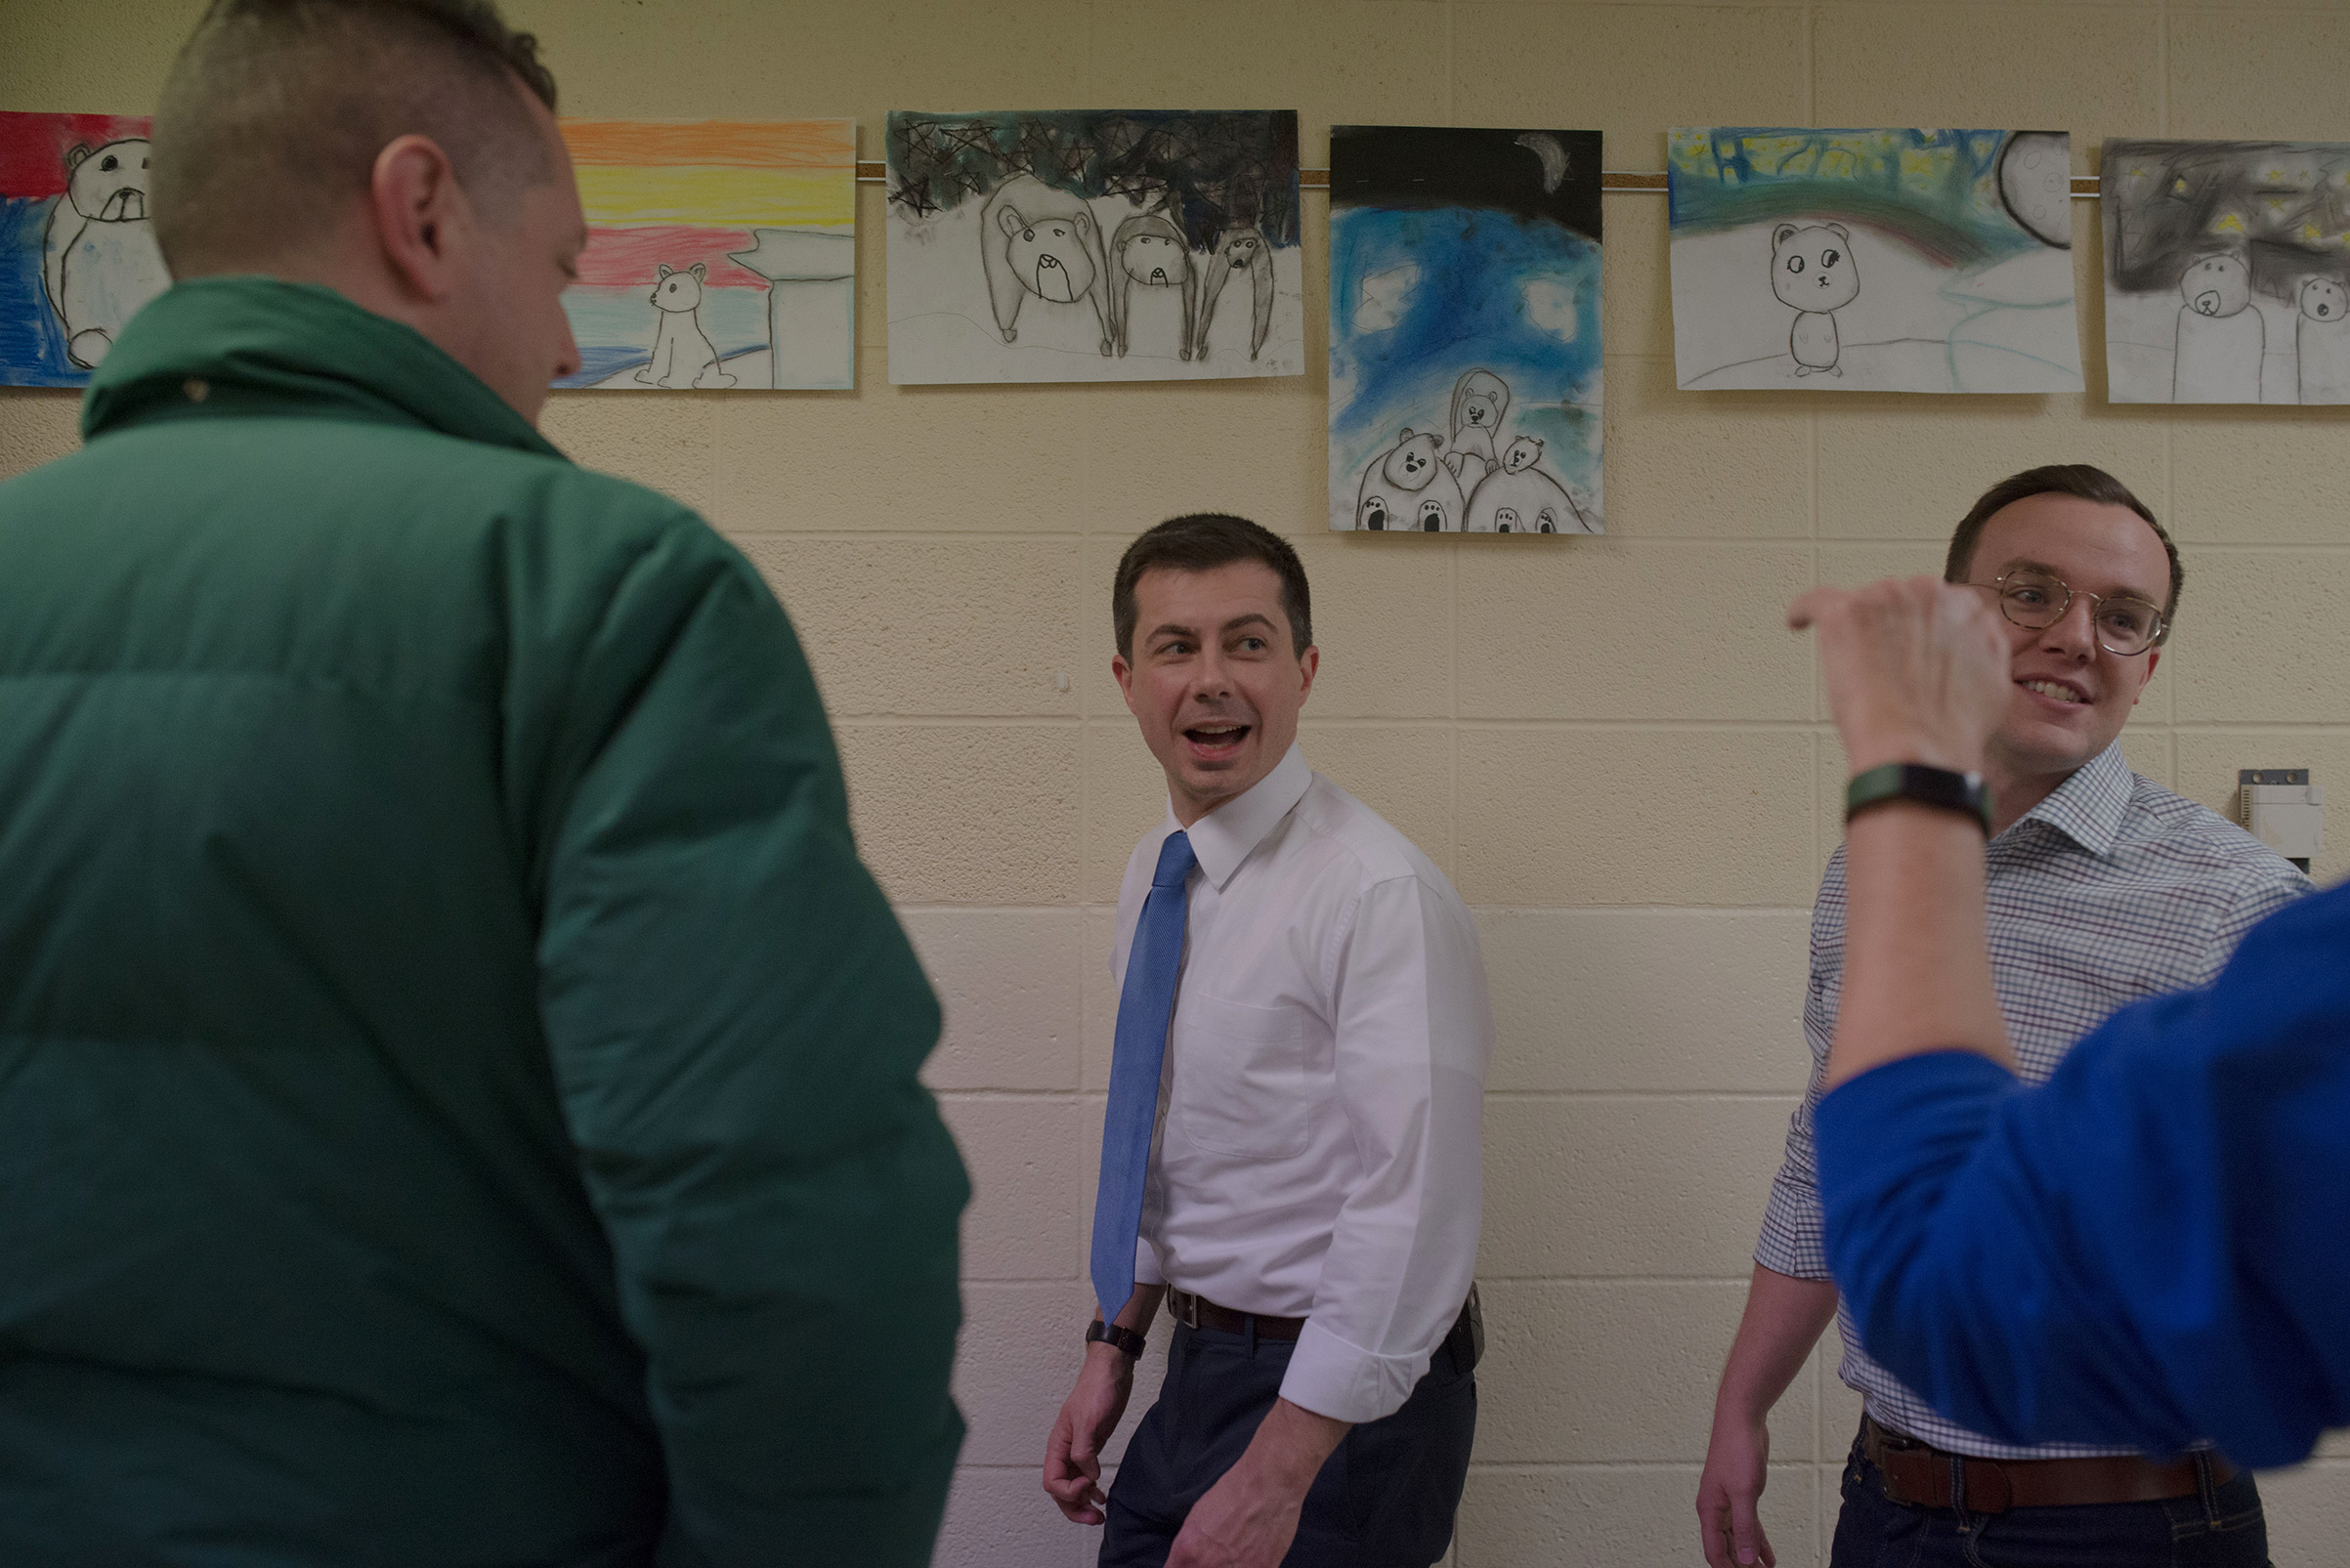 Democratic presidential candidate and South Bend, Ind., Mayor Pete Buttigieg arrives at a campaign event with his and husband Chasten Glezman (R) at Town Hall in Vinton, IA on Jan. 27, 2020.